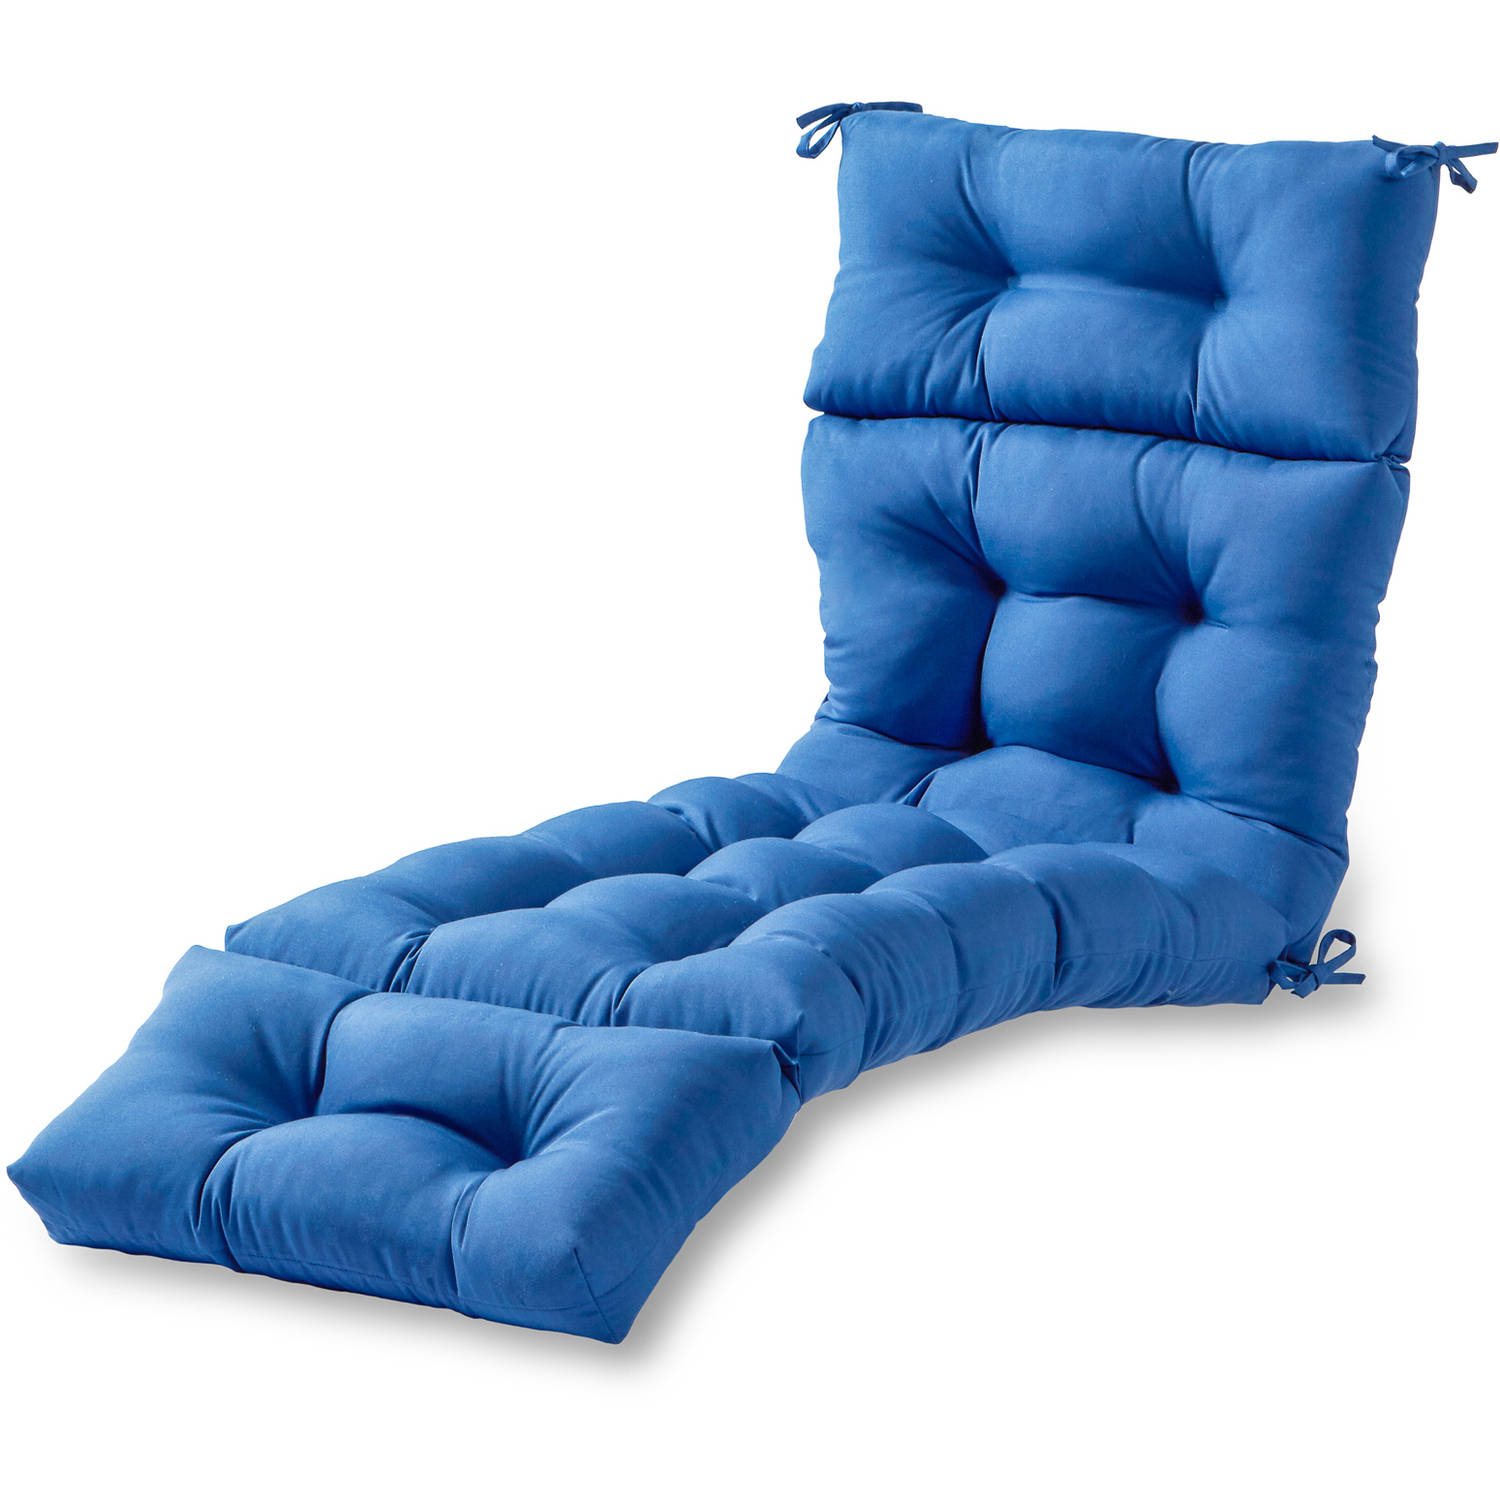 "Greendale Home Fashions 72"" Outdoor Chaise Lounger Cushion, Marine Blue"